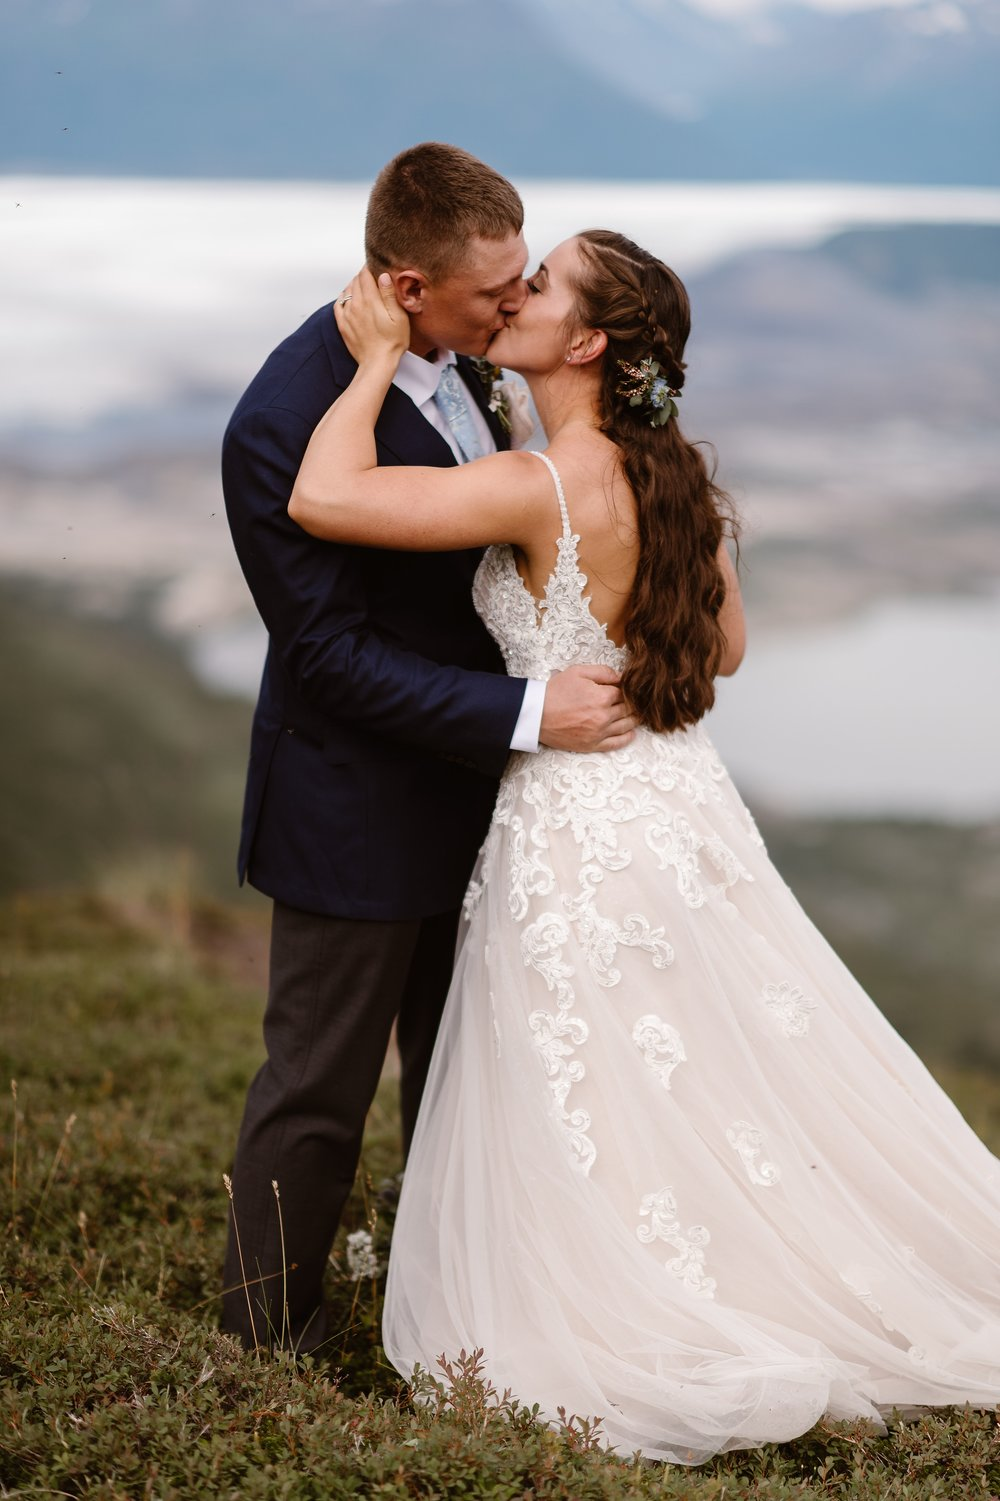 The bride and groom embrace and kiss during their elopement ceremony. These elopement photos, captured by Adventure Instead, Alaska wedding photographers, show Jordyn and Connor during their Alaska Helicopter Elopement Story.